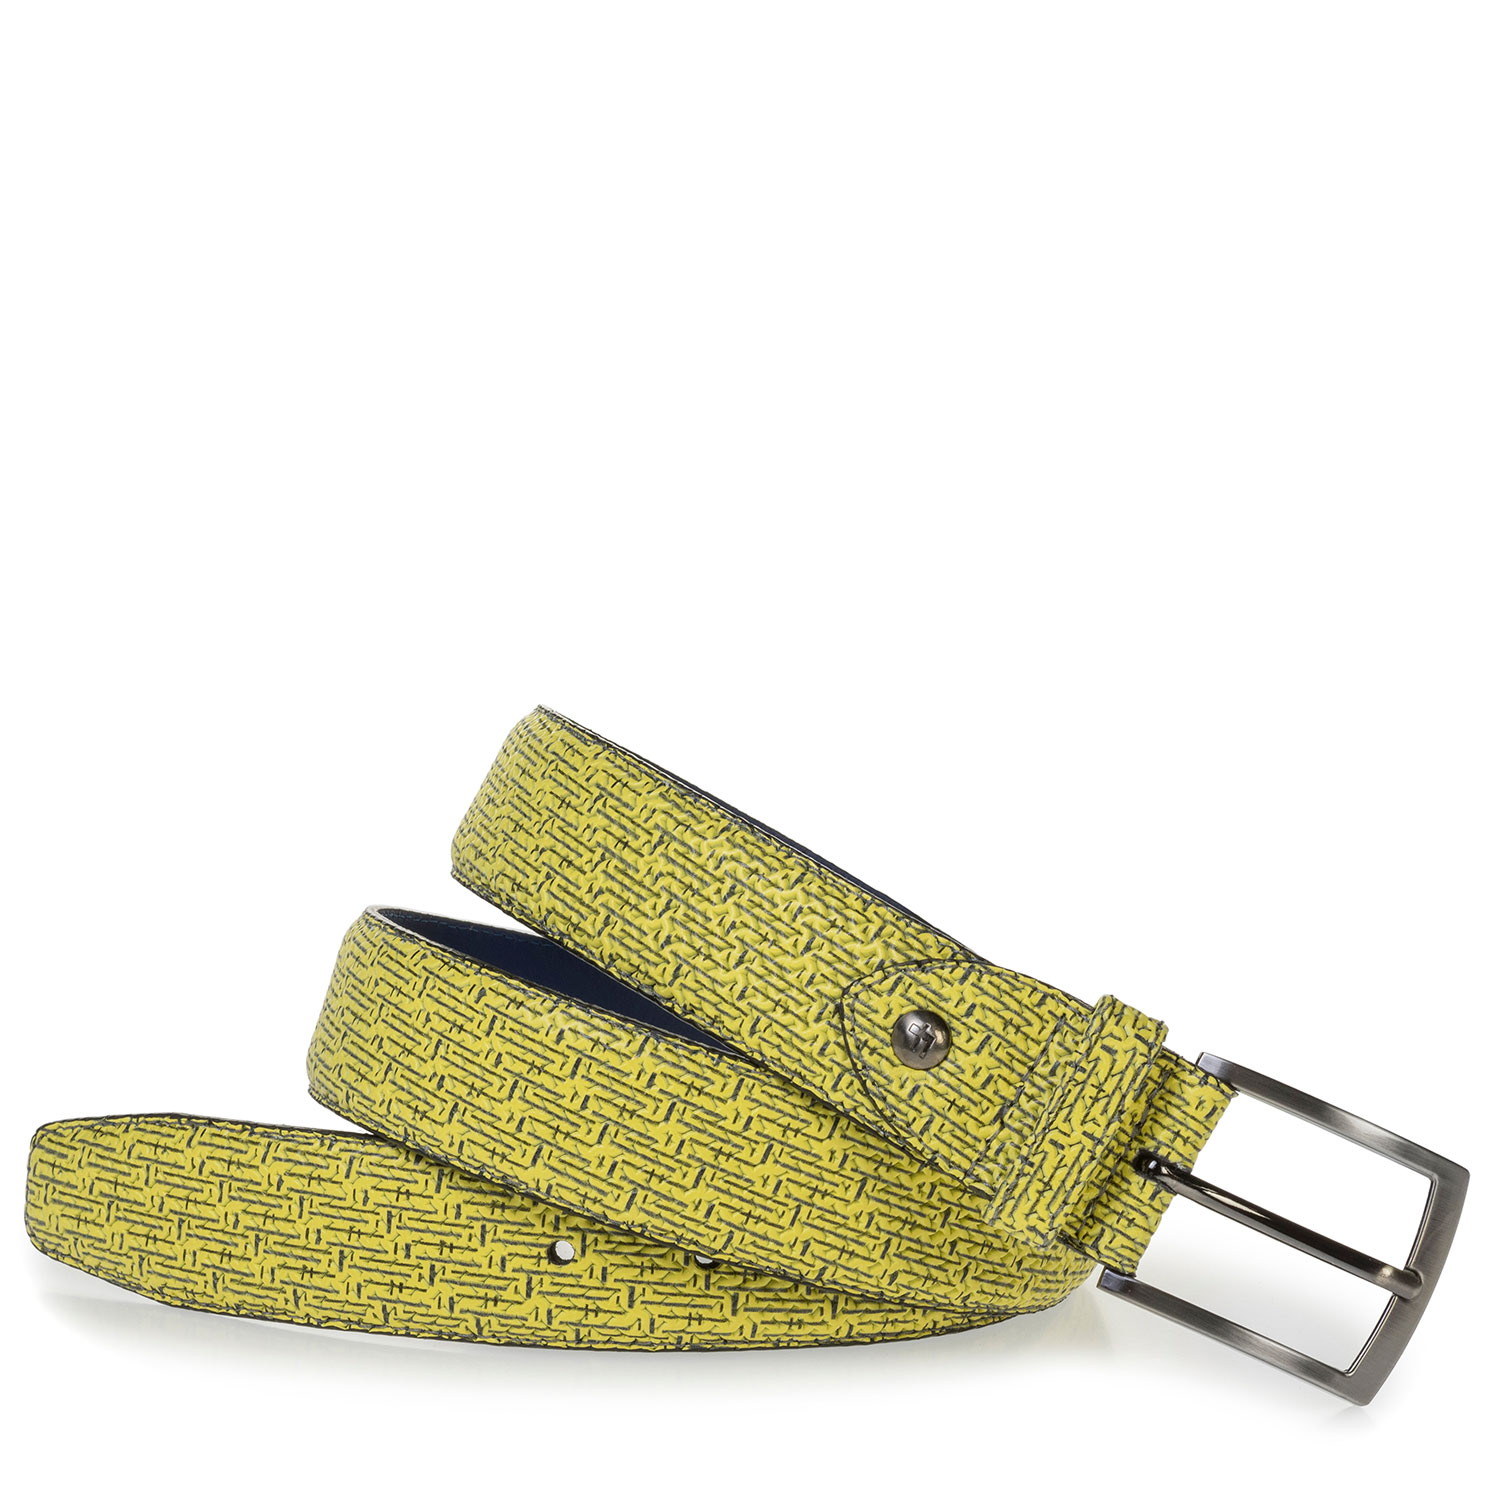 75201/92 - Yellow leather belt with black print